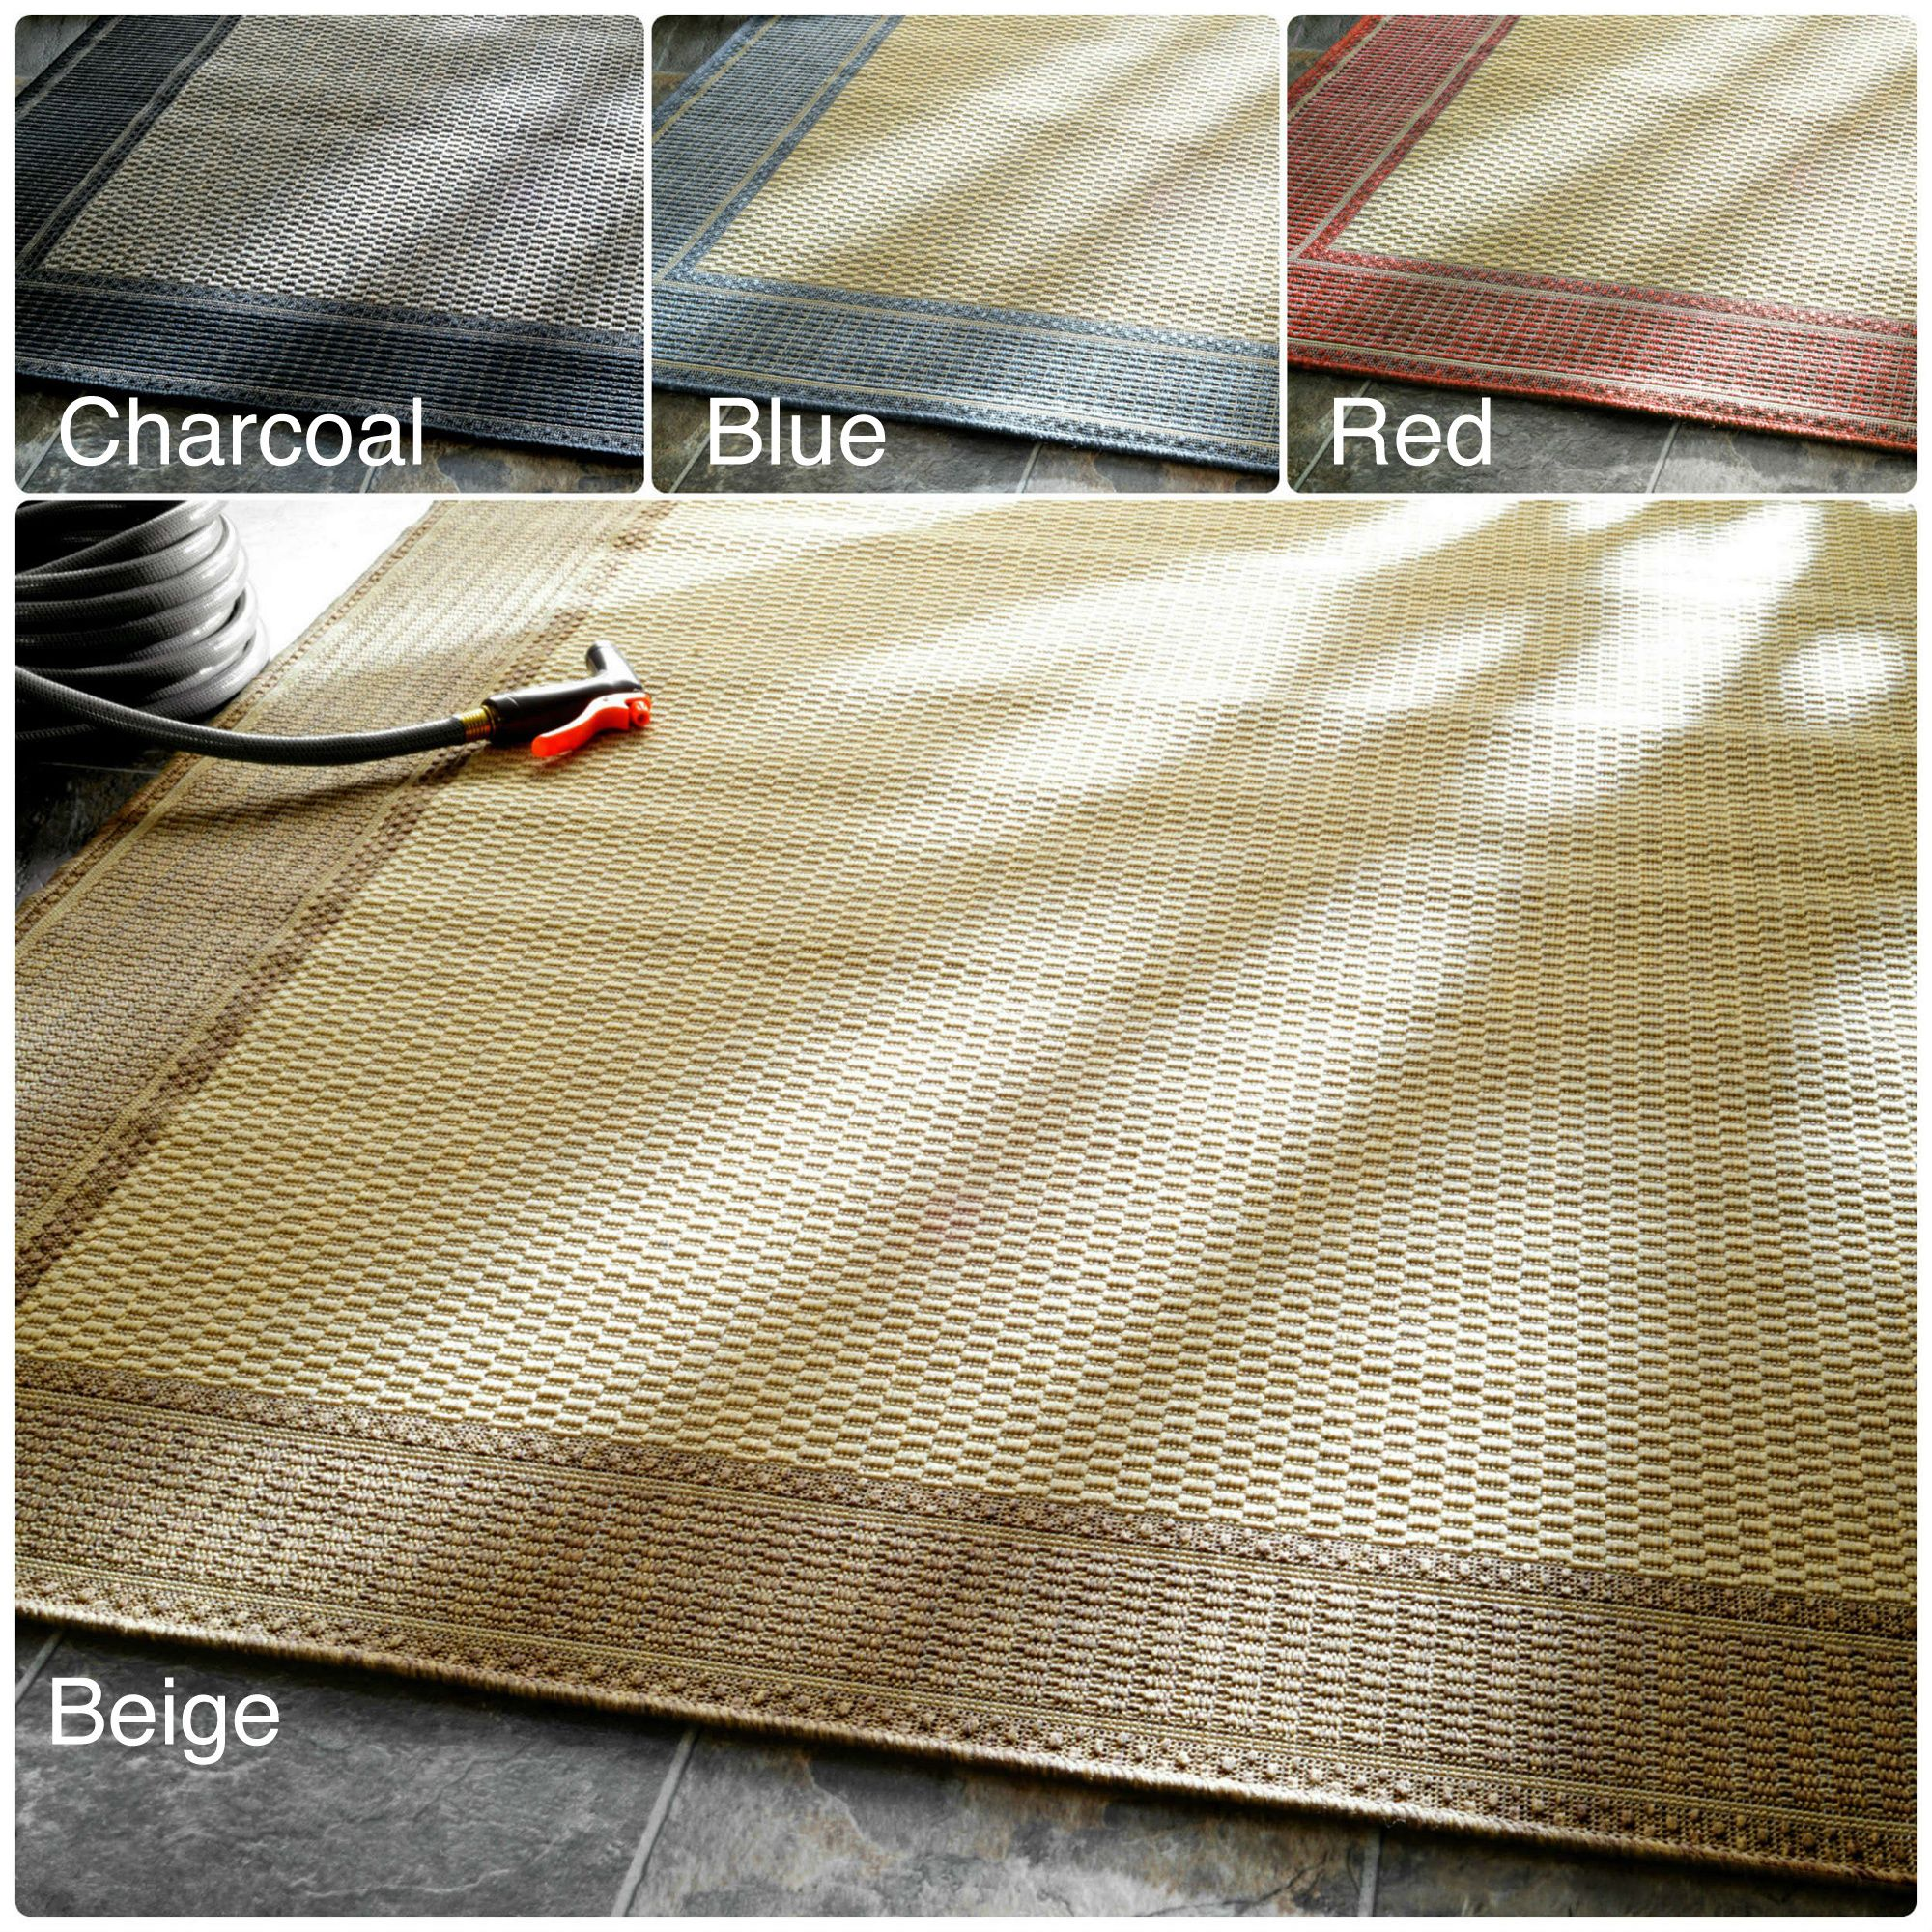 For The Three Season Room Under Deck Nuloom Outdoor Indoor Rug X Ping Great Deals On Rugs